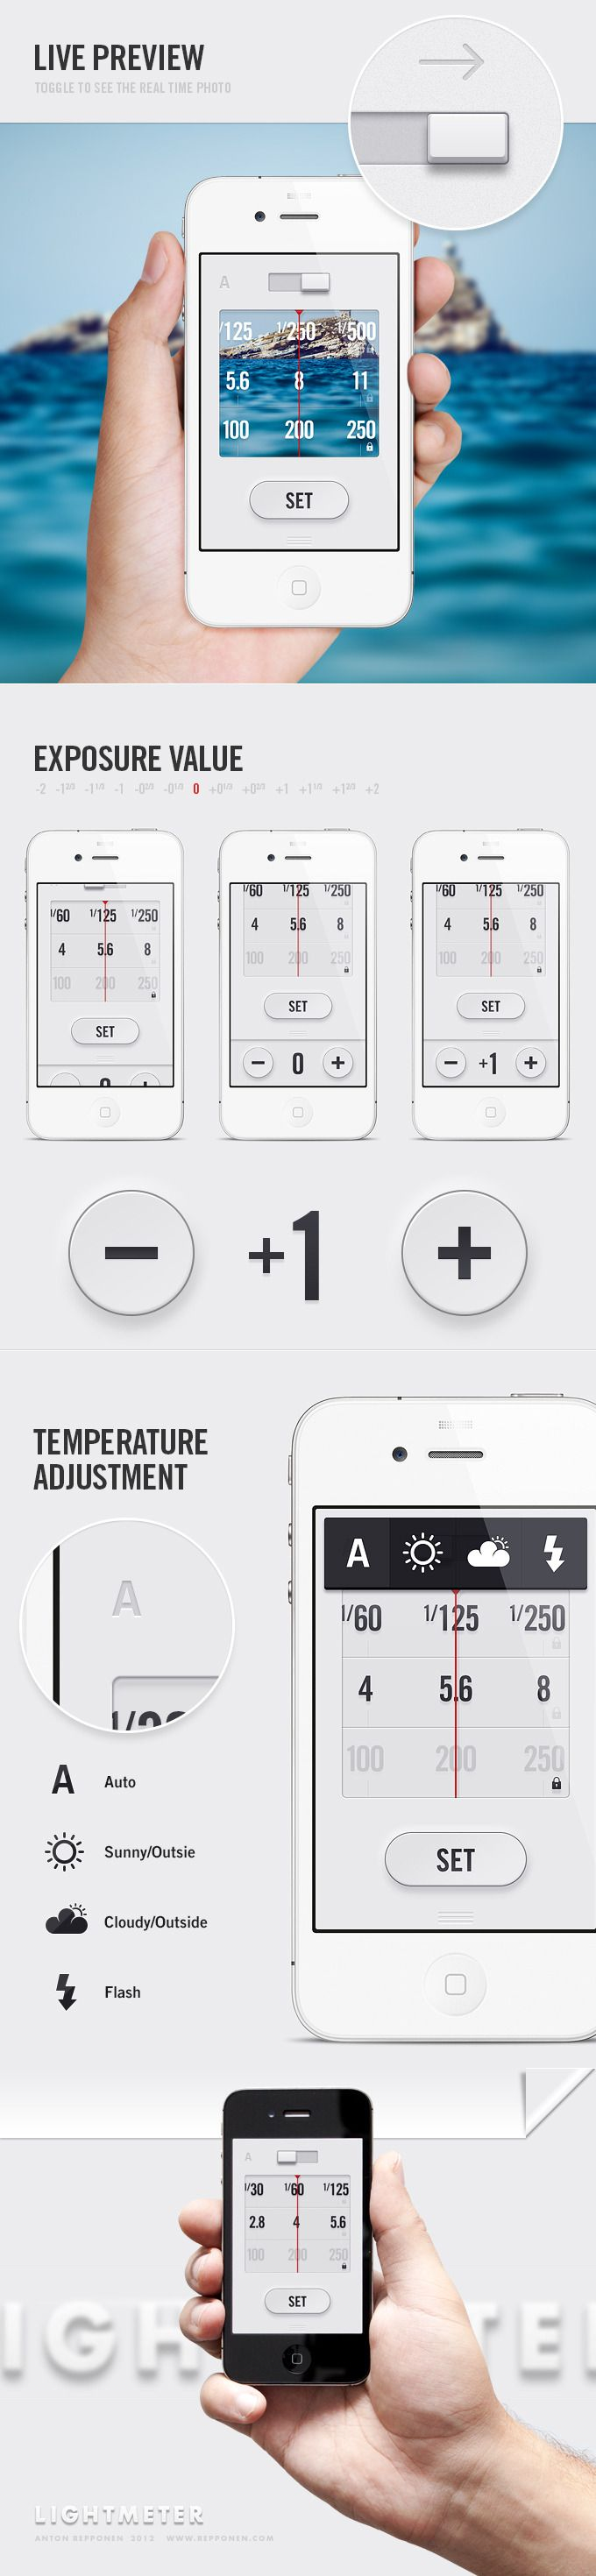 LightMeter App is a simple and easy to use light meter application for iPhone that will help you set your exposure right, especially if you're using manual cameras.